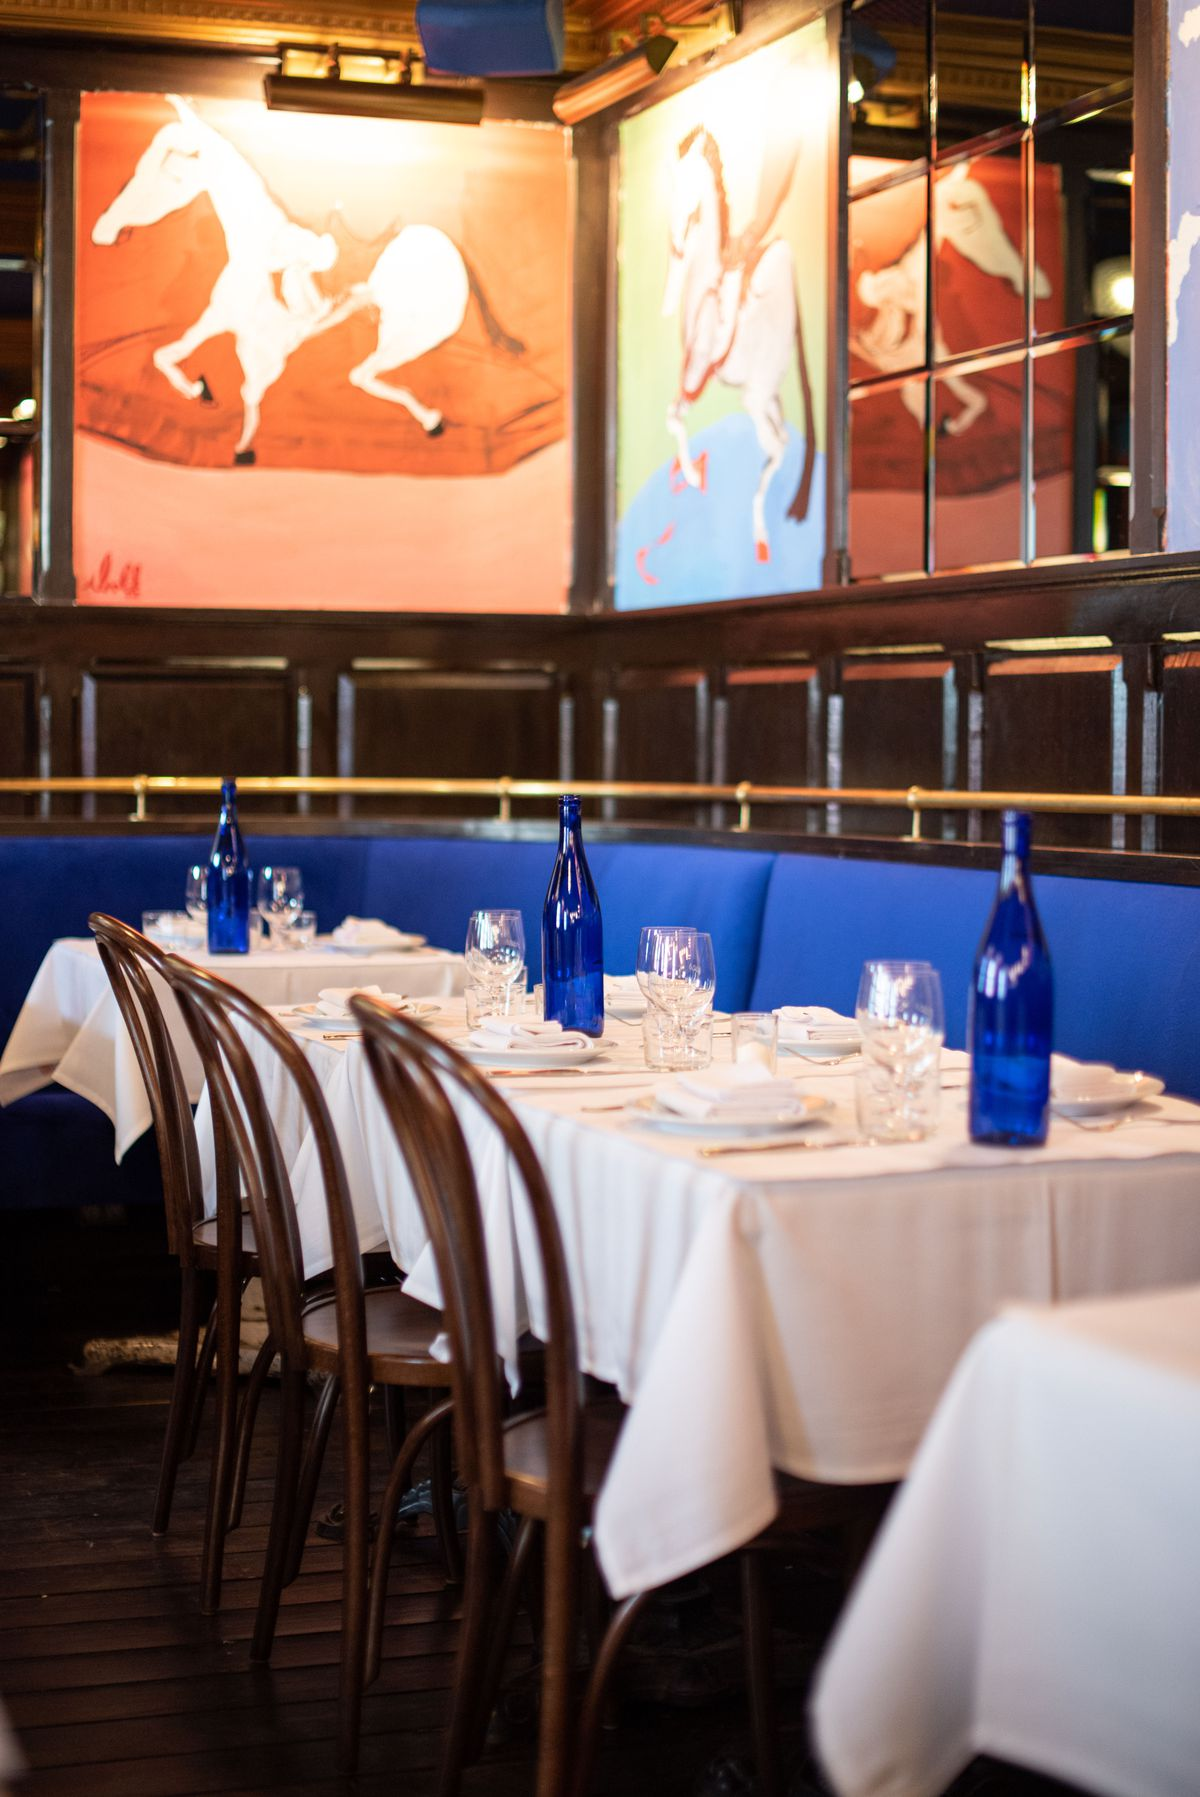 White tablecloths and blue booths and hanging paintings in an old restaurant.